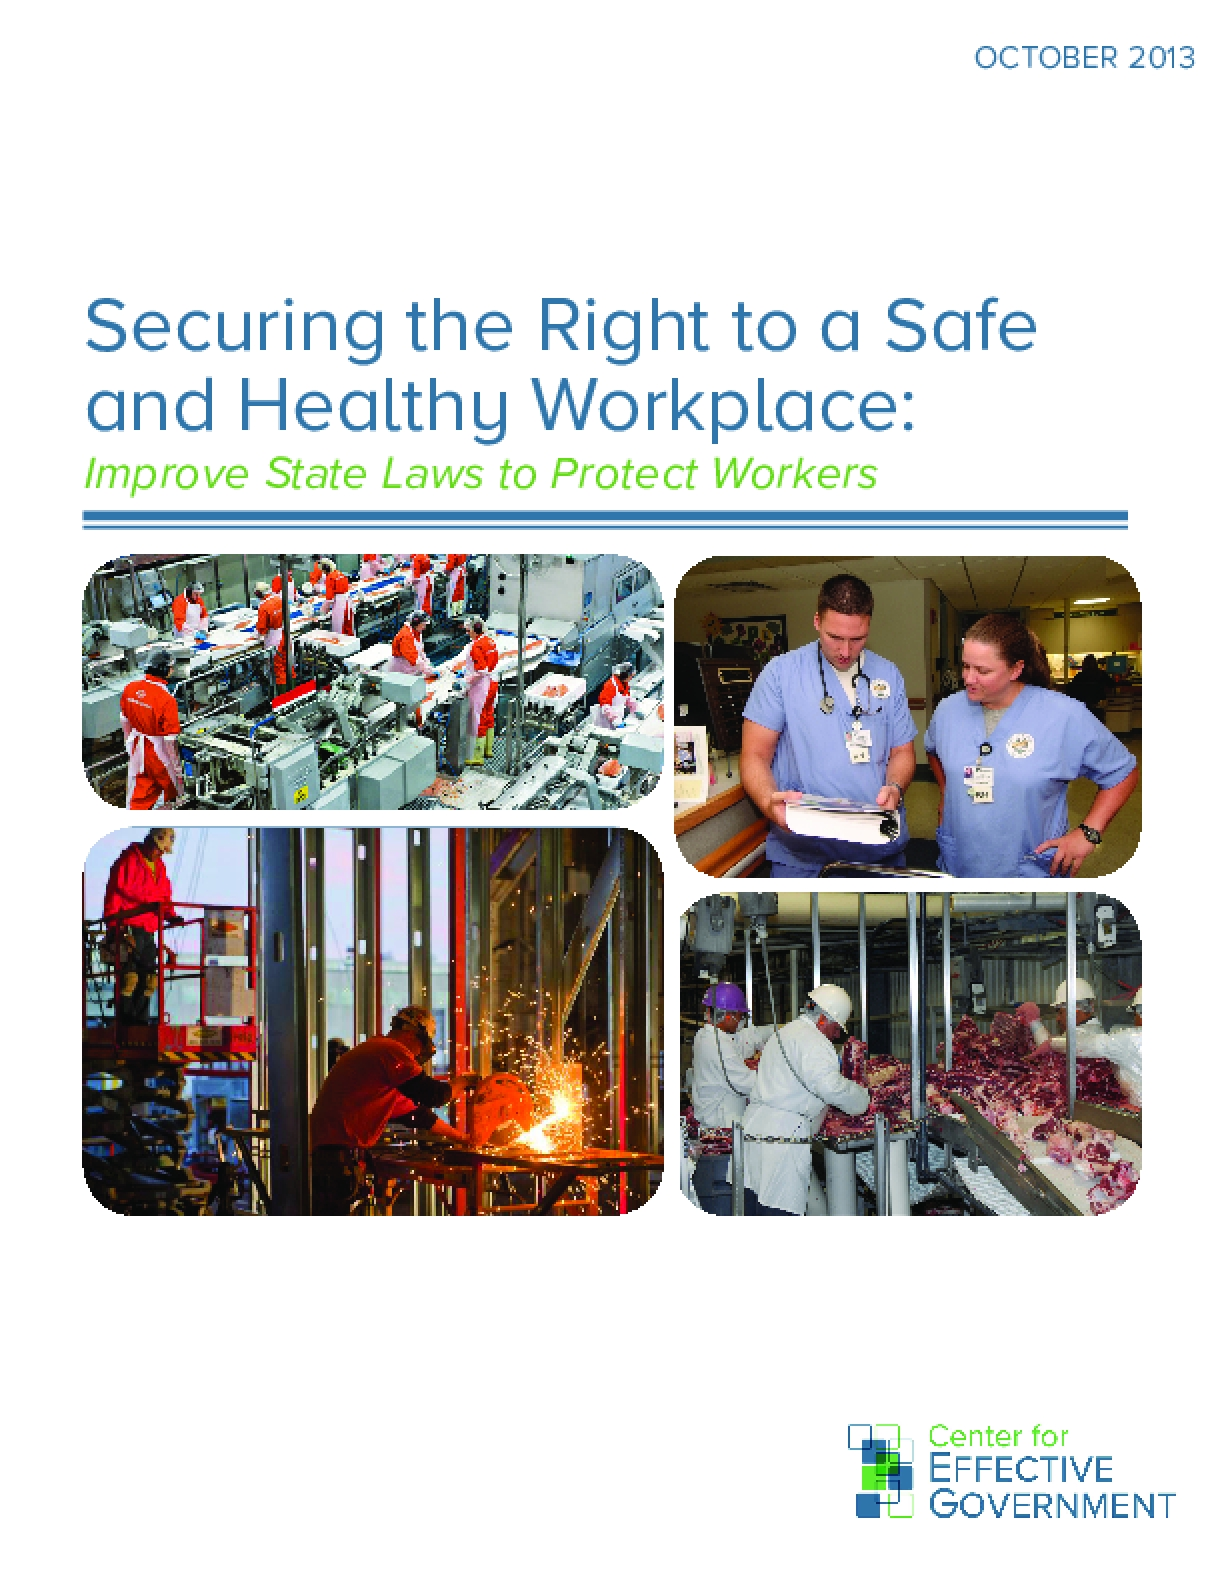 Securing the Right to a Safe and Healthy Workplace: Improve State Laws to Protect Workers